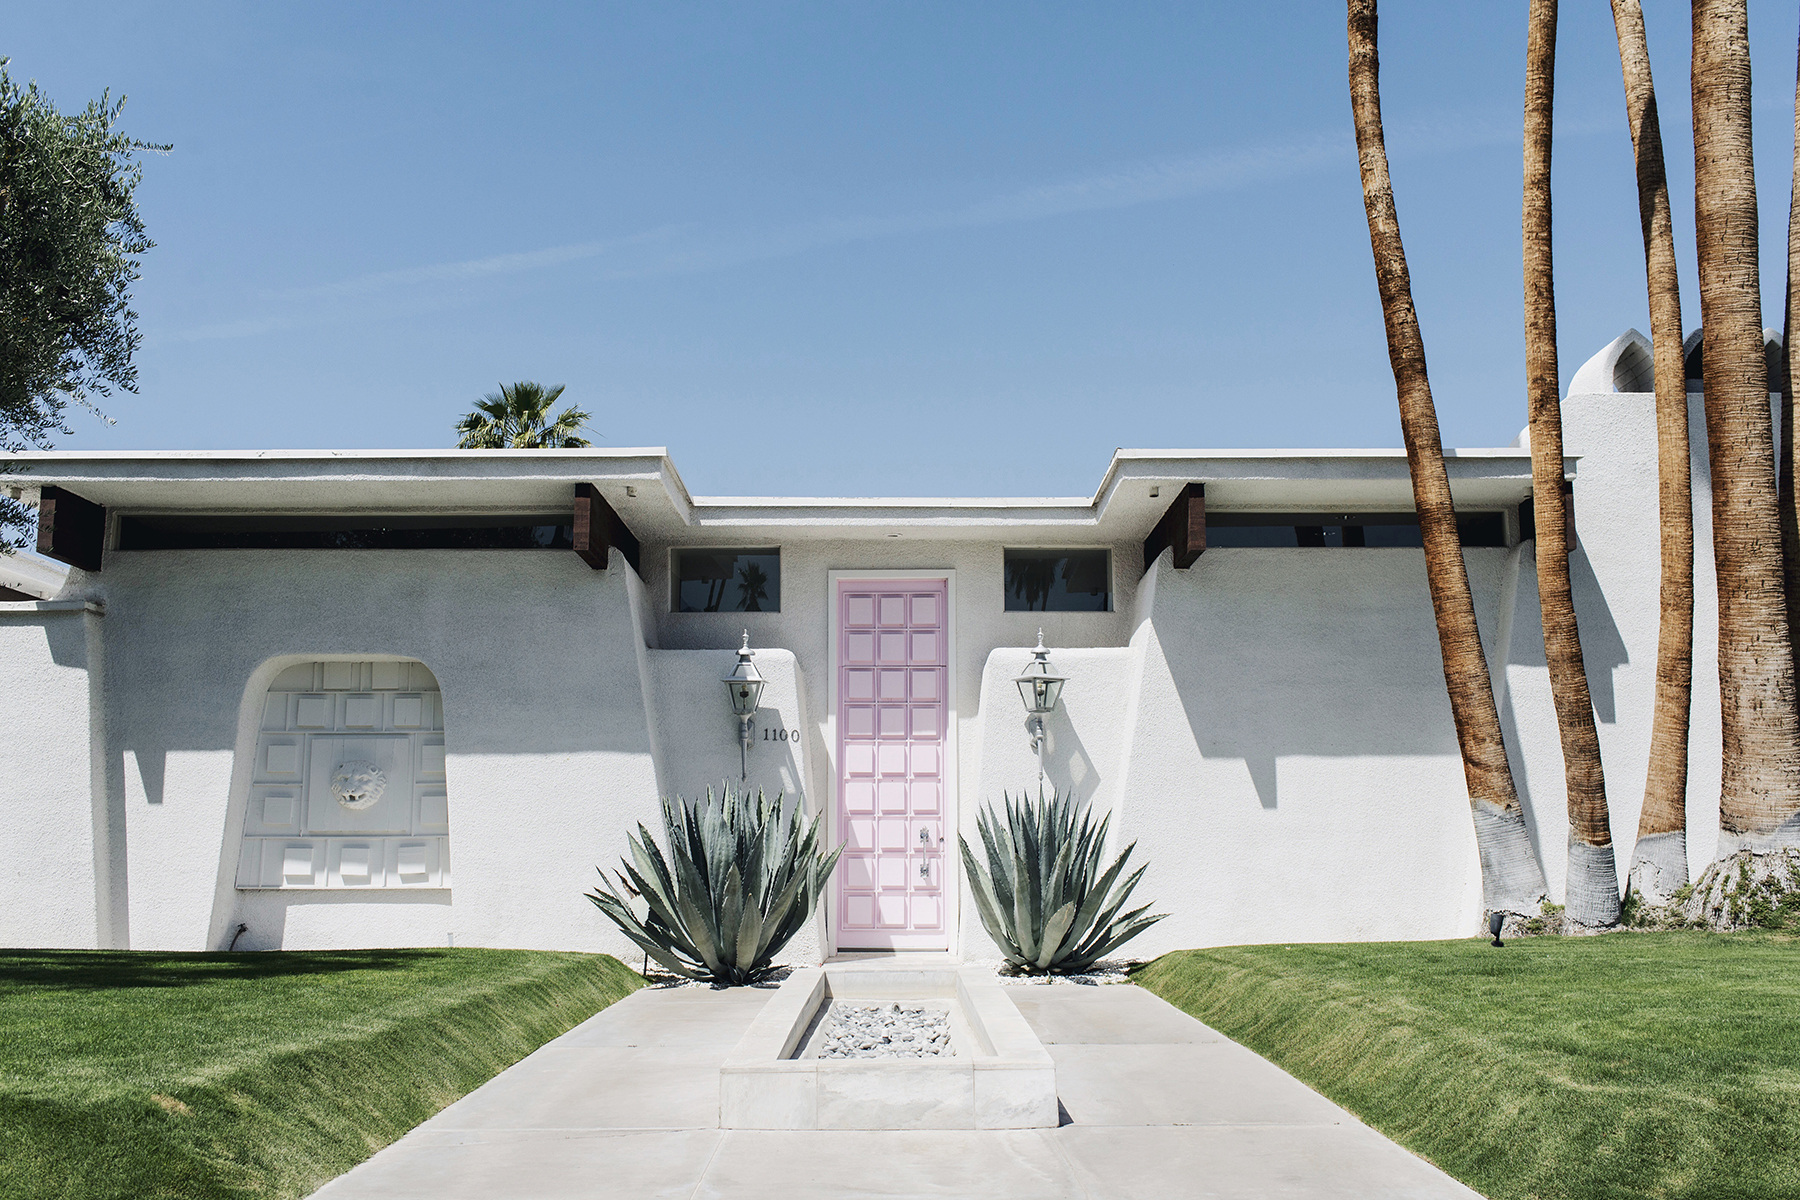 Pink door house Palm Springs, California family travel with baby & toddler | Happy Grey Lucky